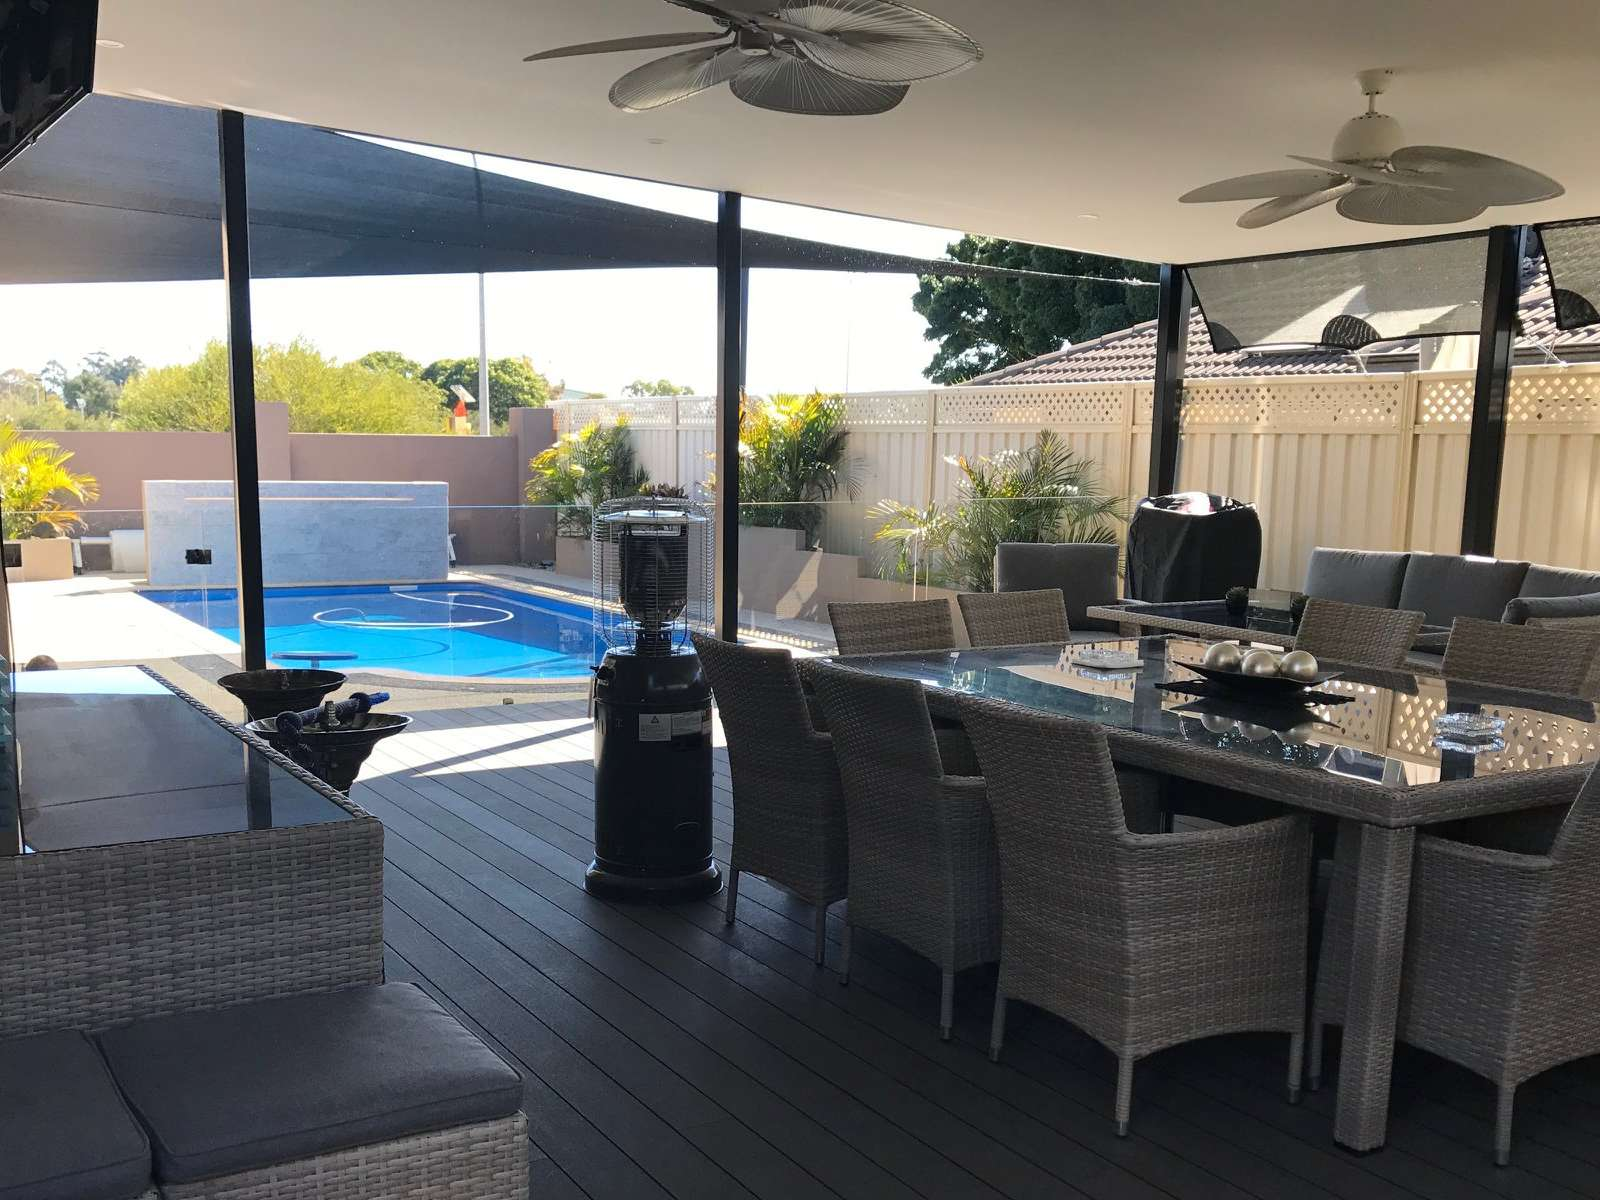 Outdoor renovation with pool.